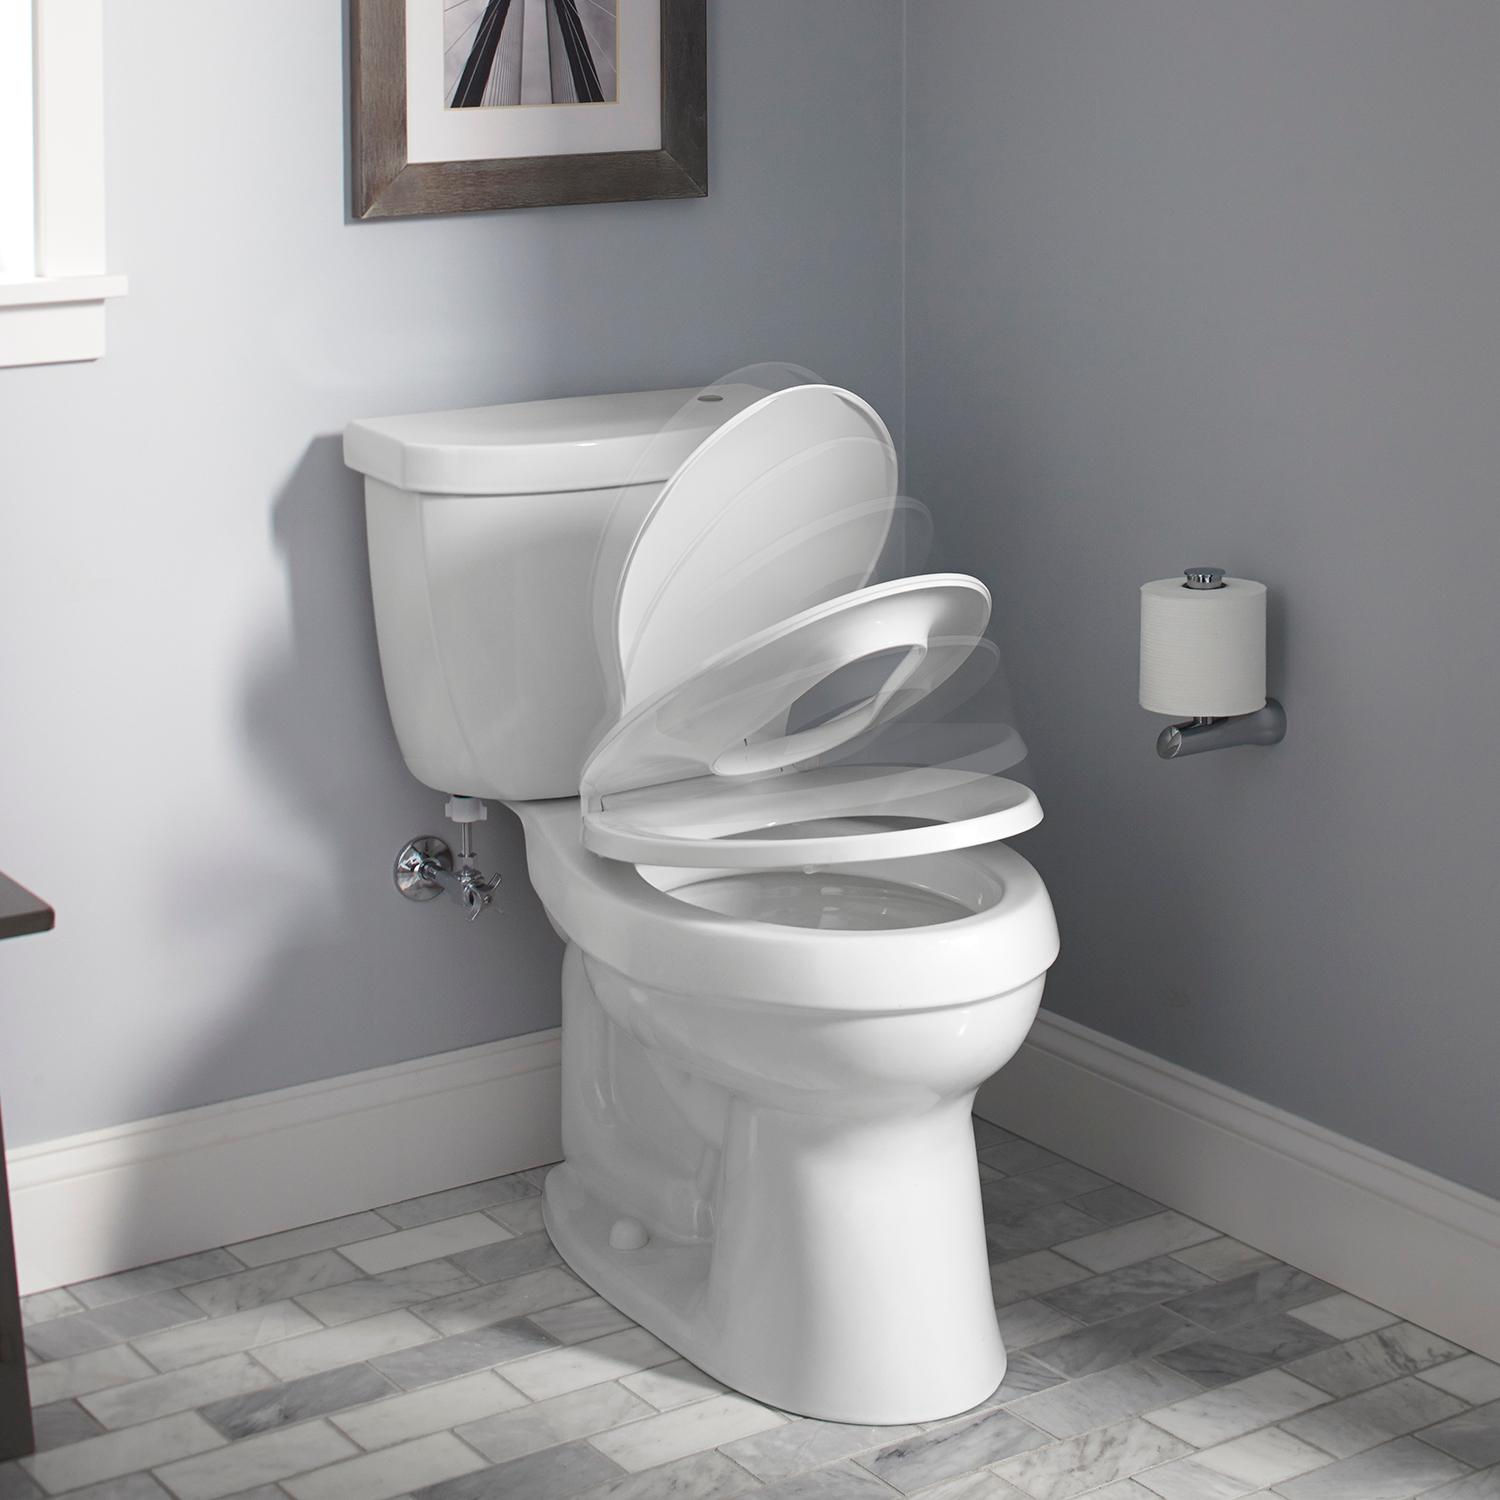 Fabulous Kohler K 2599 47 Transitions Nightlight Quiet Close With Grip Tight Elongated Toilet Seat Almond Onthecornerstone Fun Painted Chair Ideas Images Onthecornerstoneorg